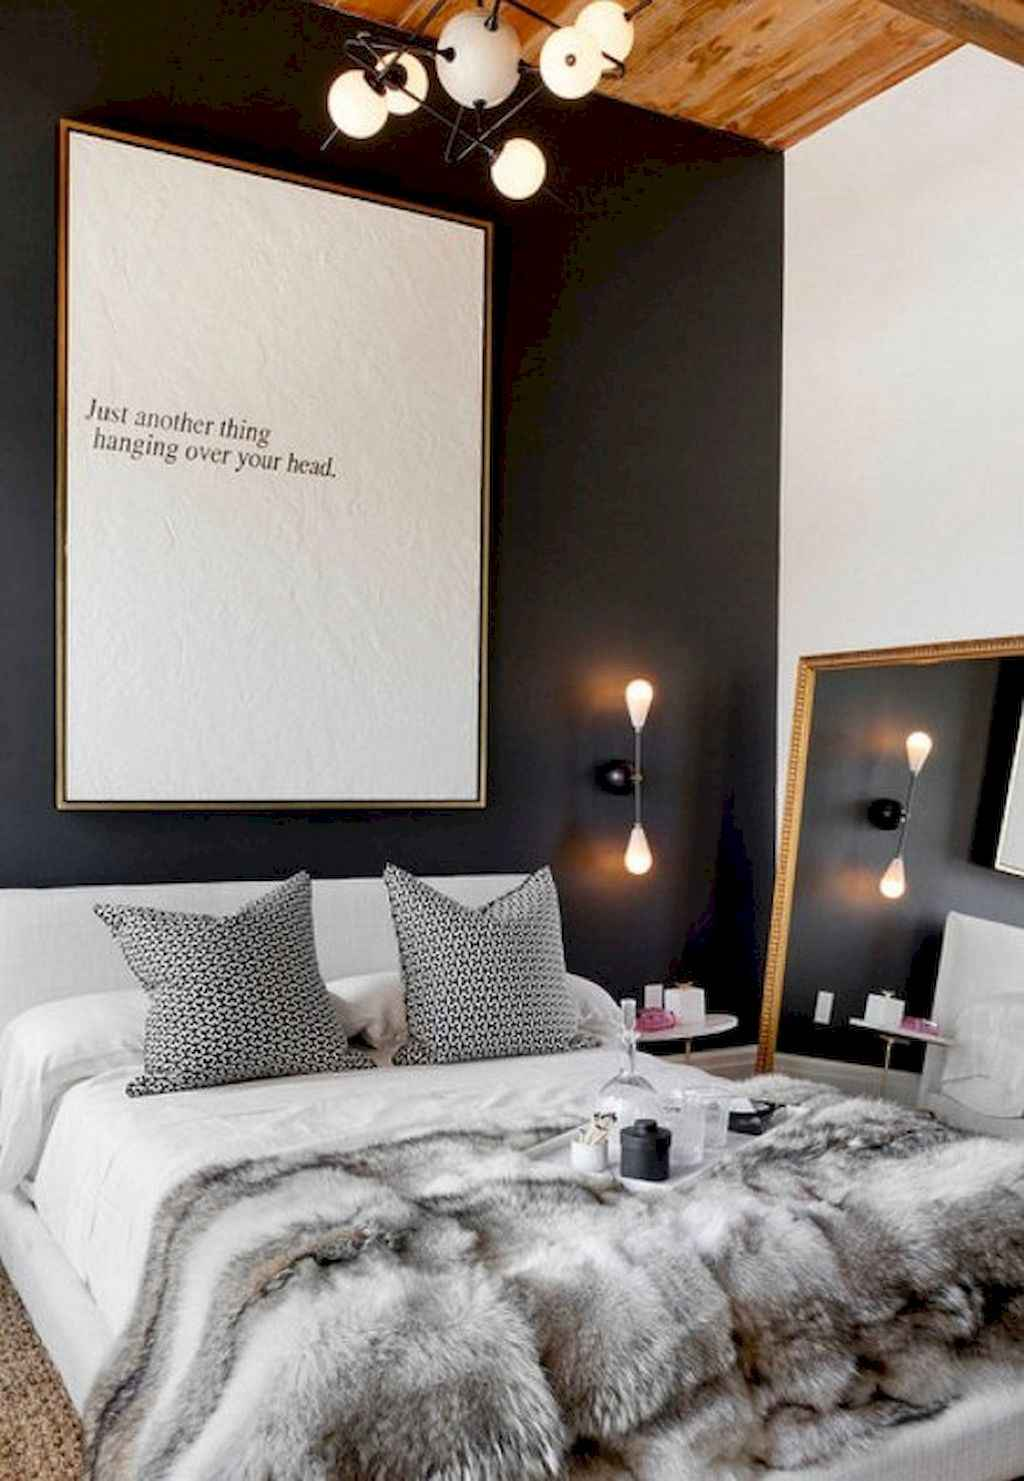 Couples first apartment decorating ideas (56)